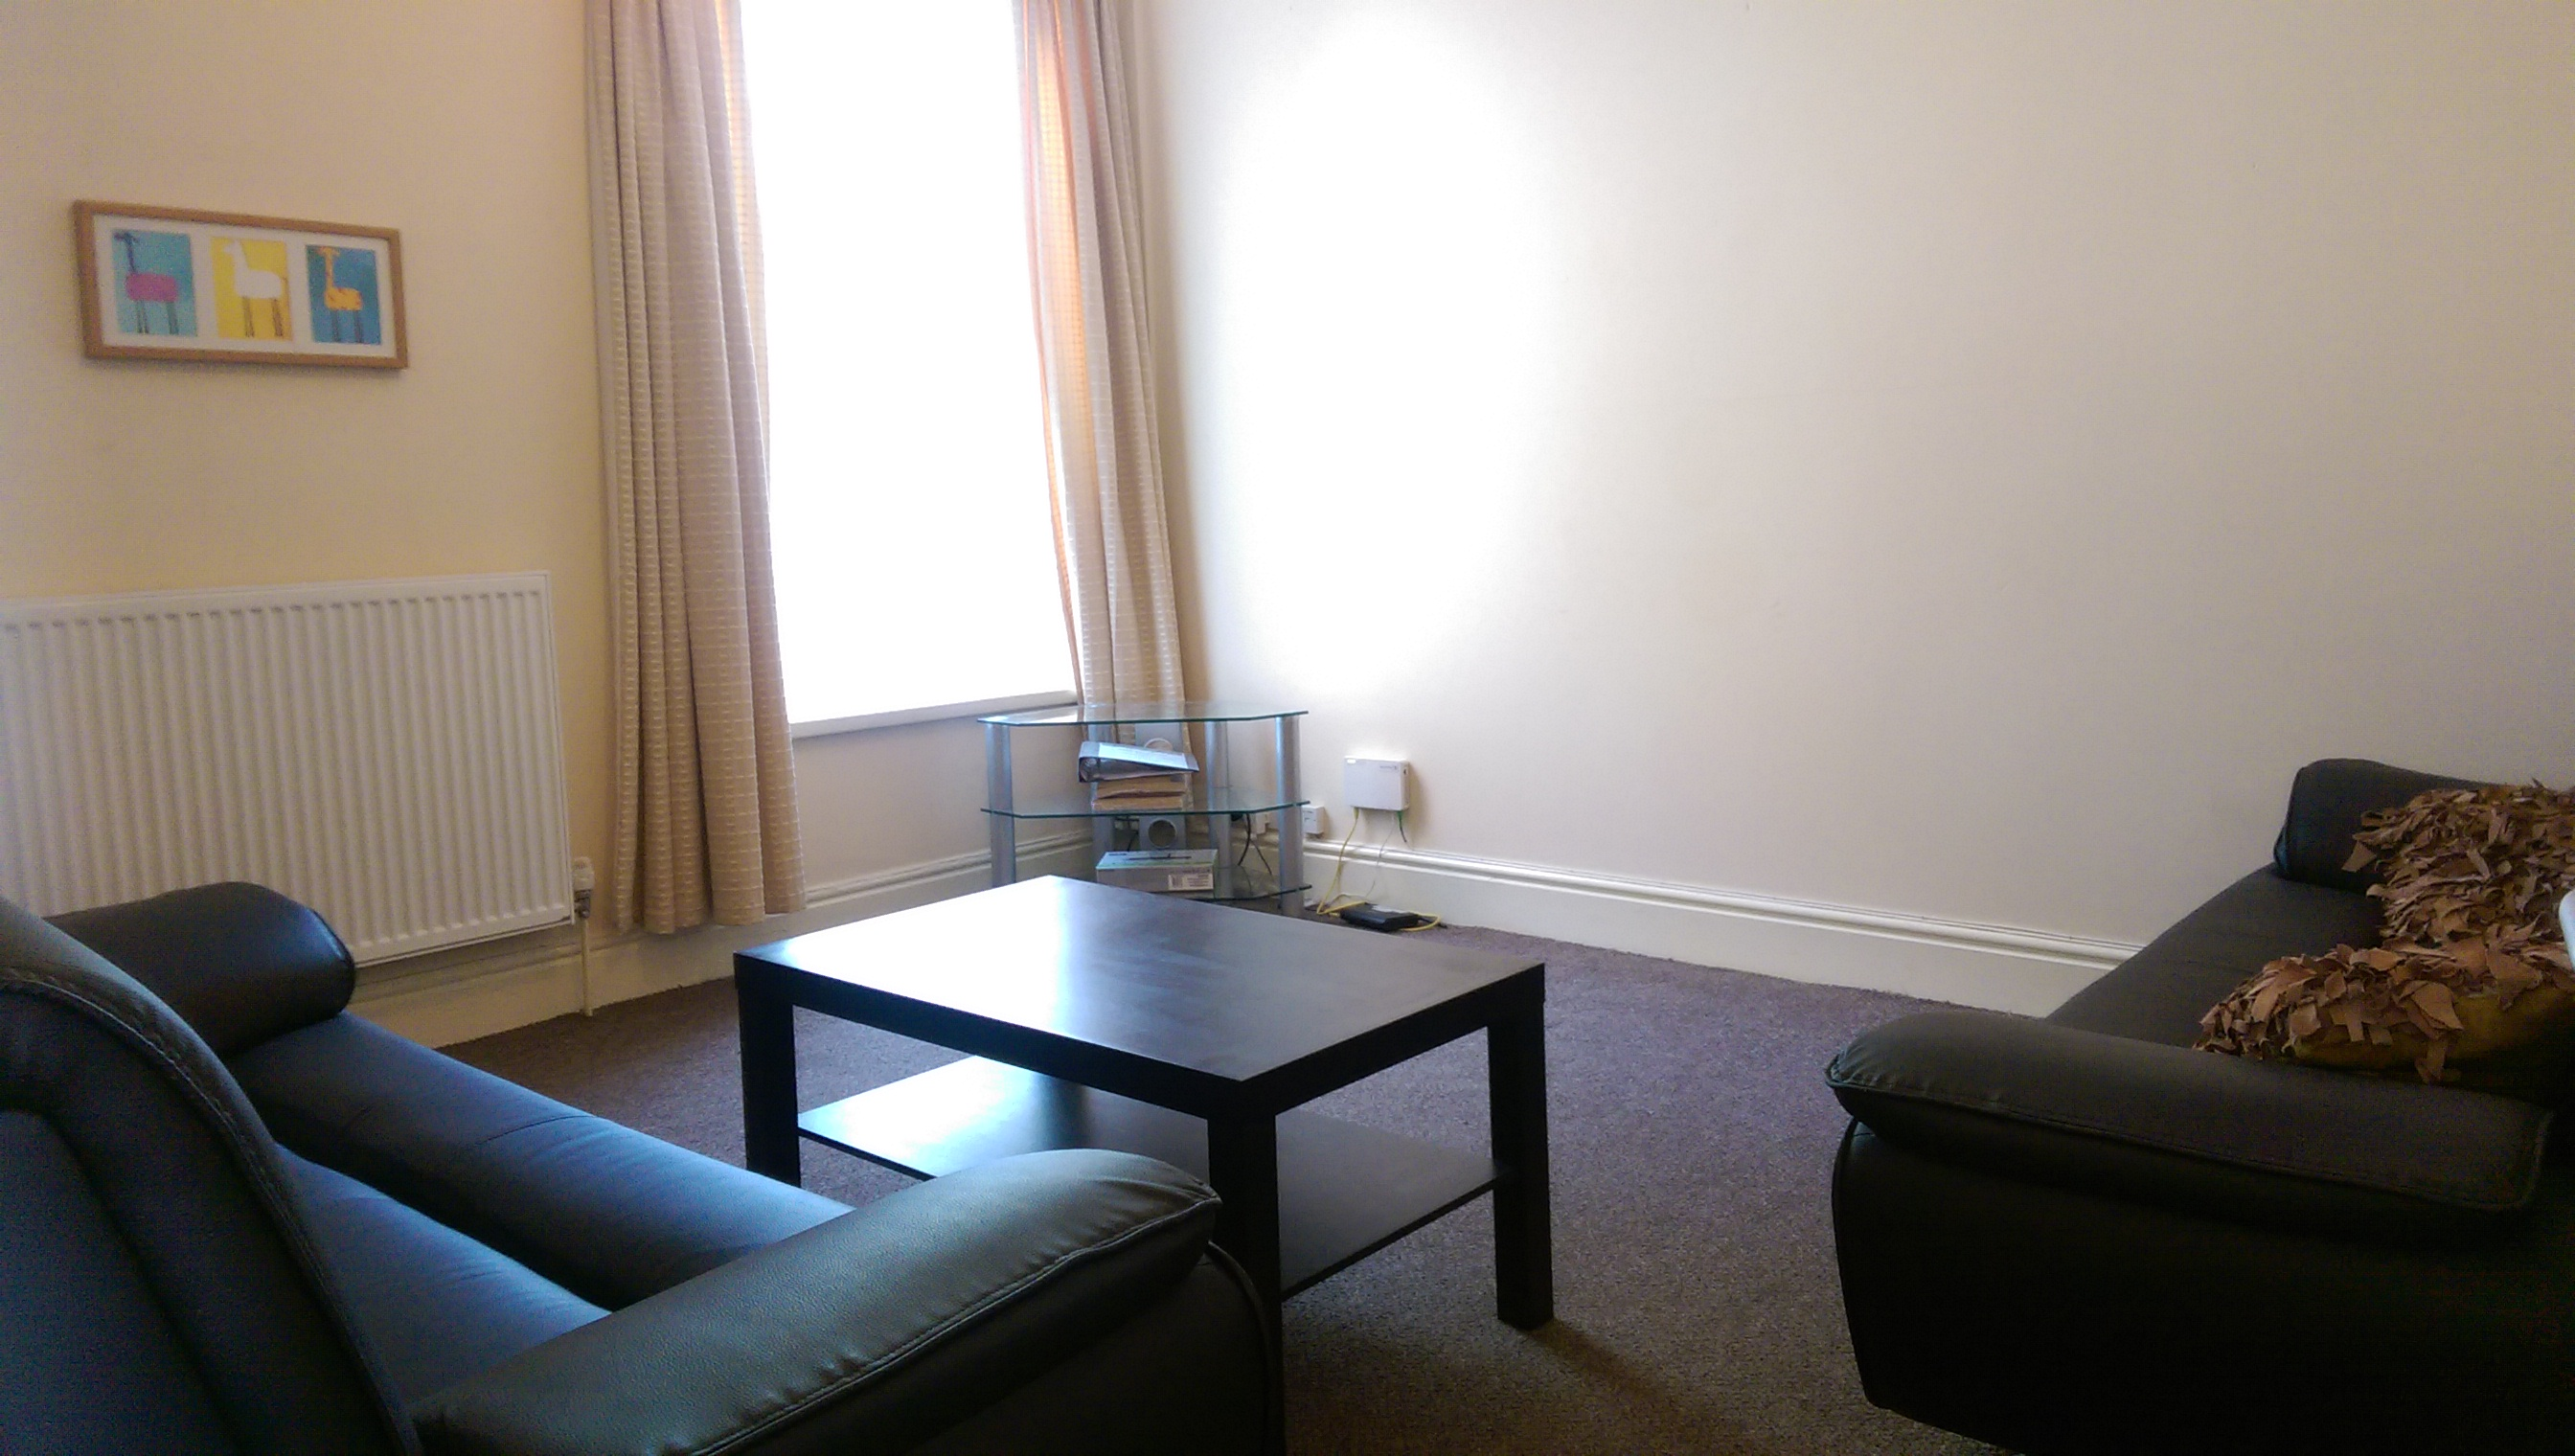 Longman Jones Student Accommodation Available academic year 20/21! Haworth Street (Ref: 1428)